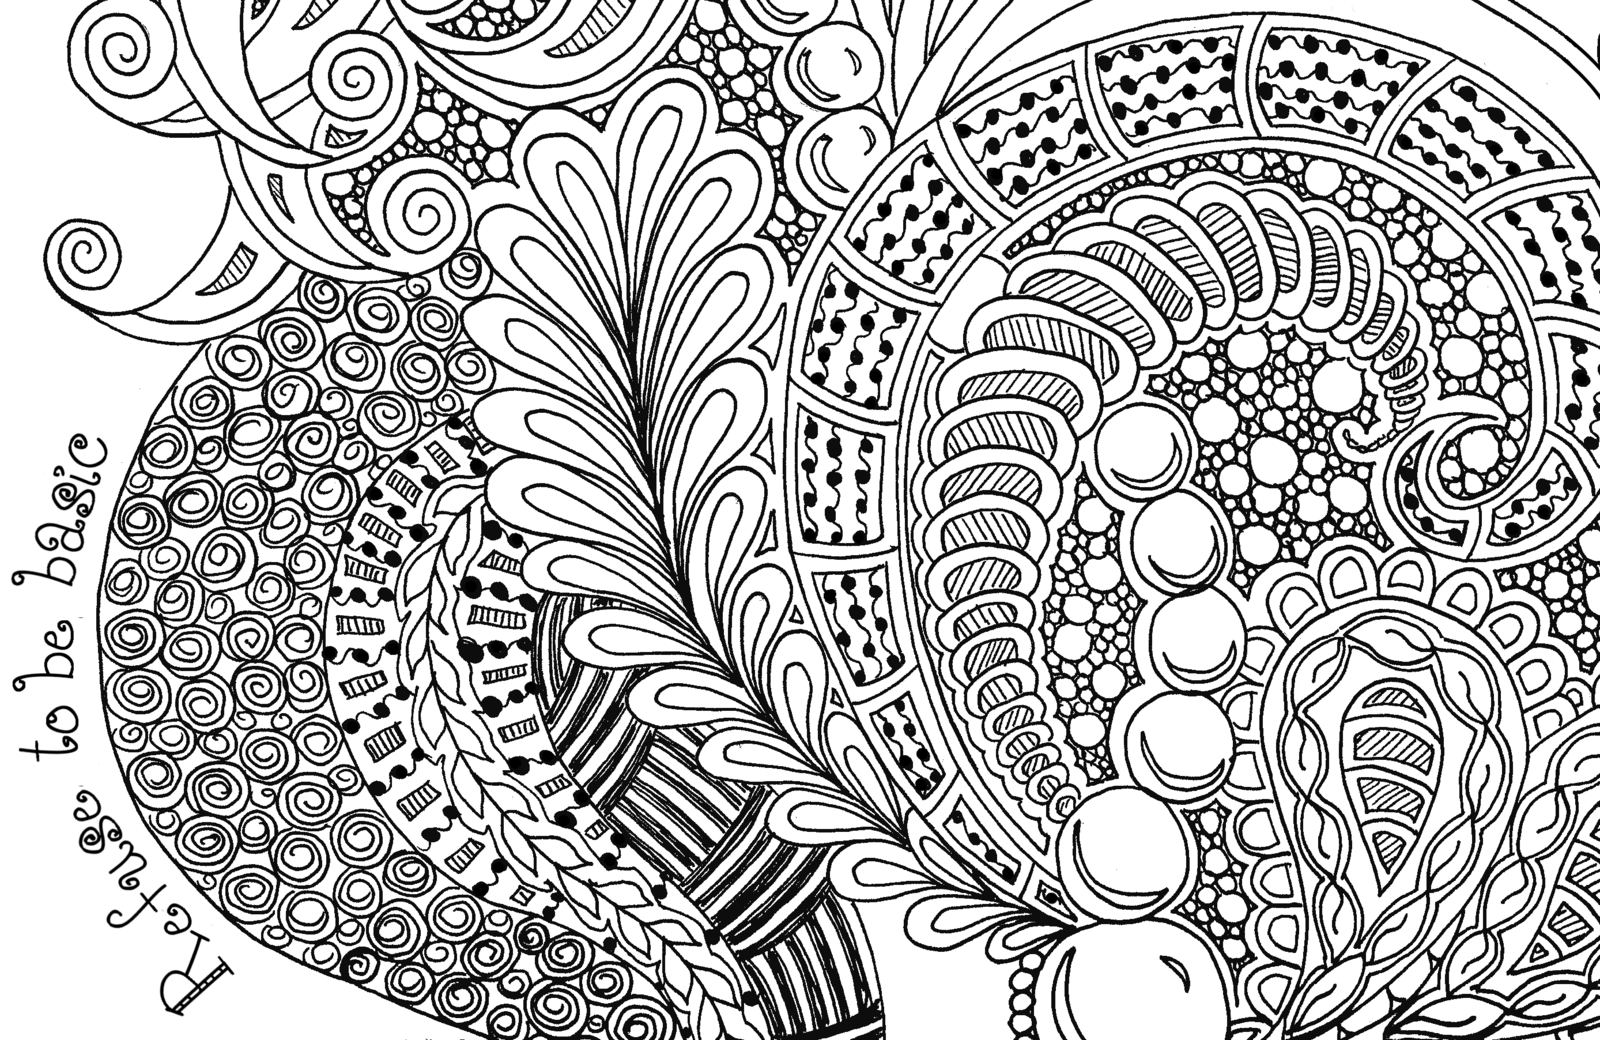 Printable Zentangle Coloring Pages Coloring Home Coloring Pages Zentangle